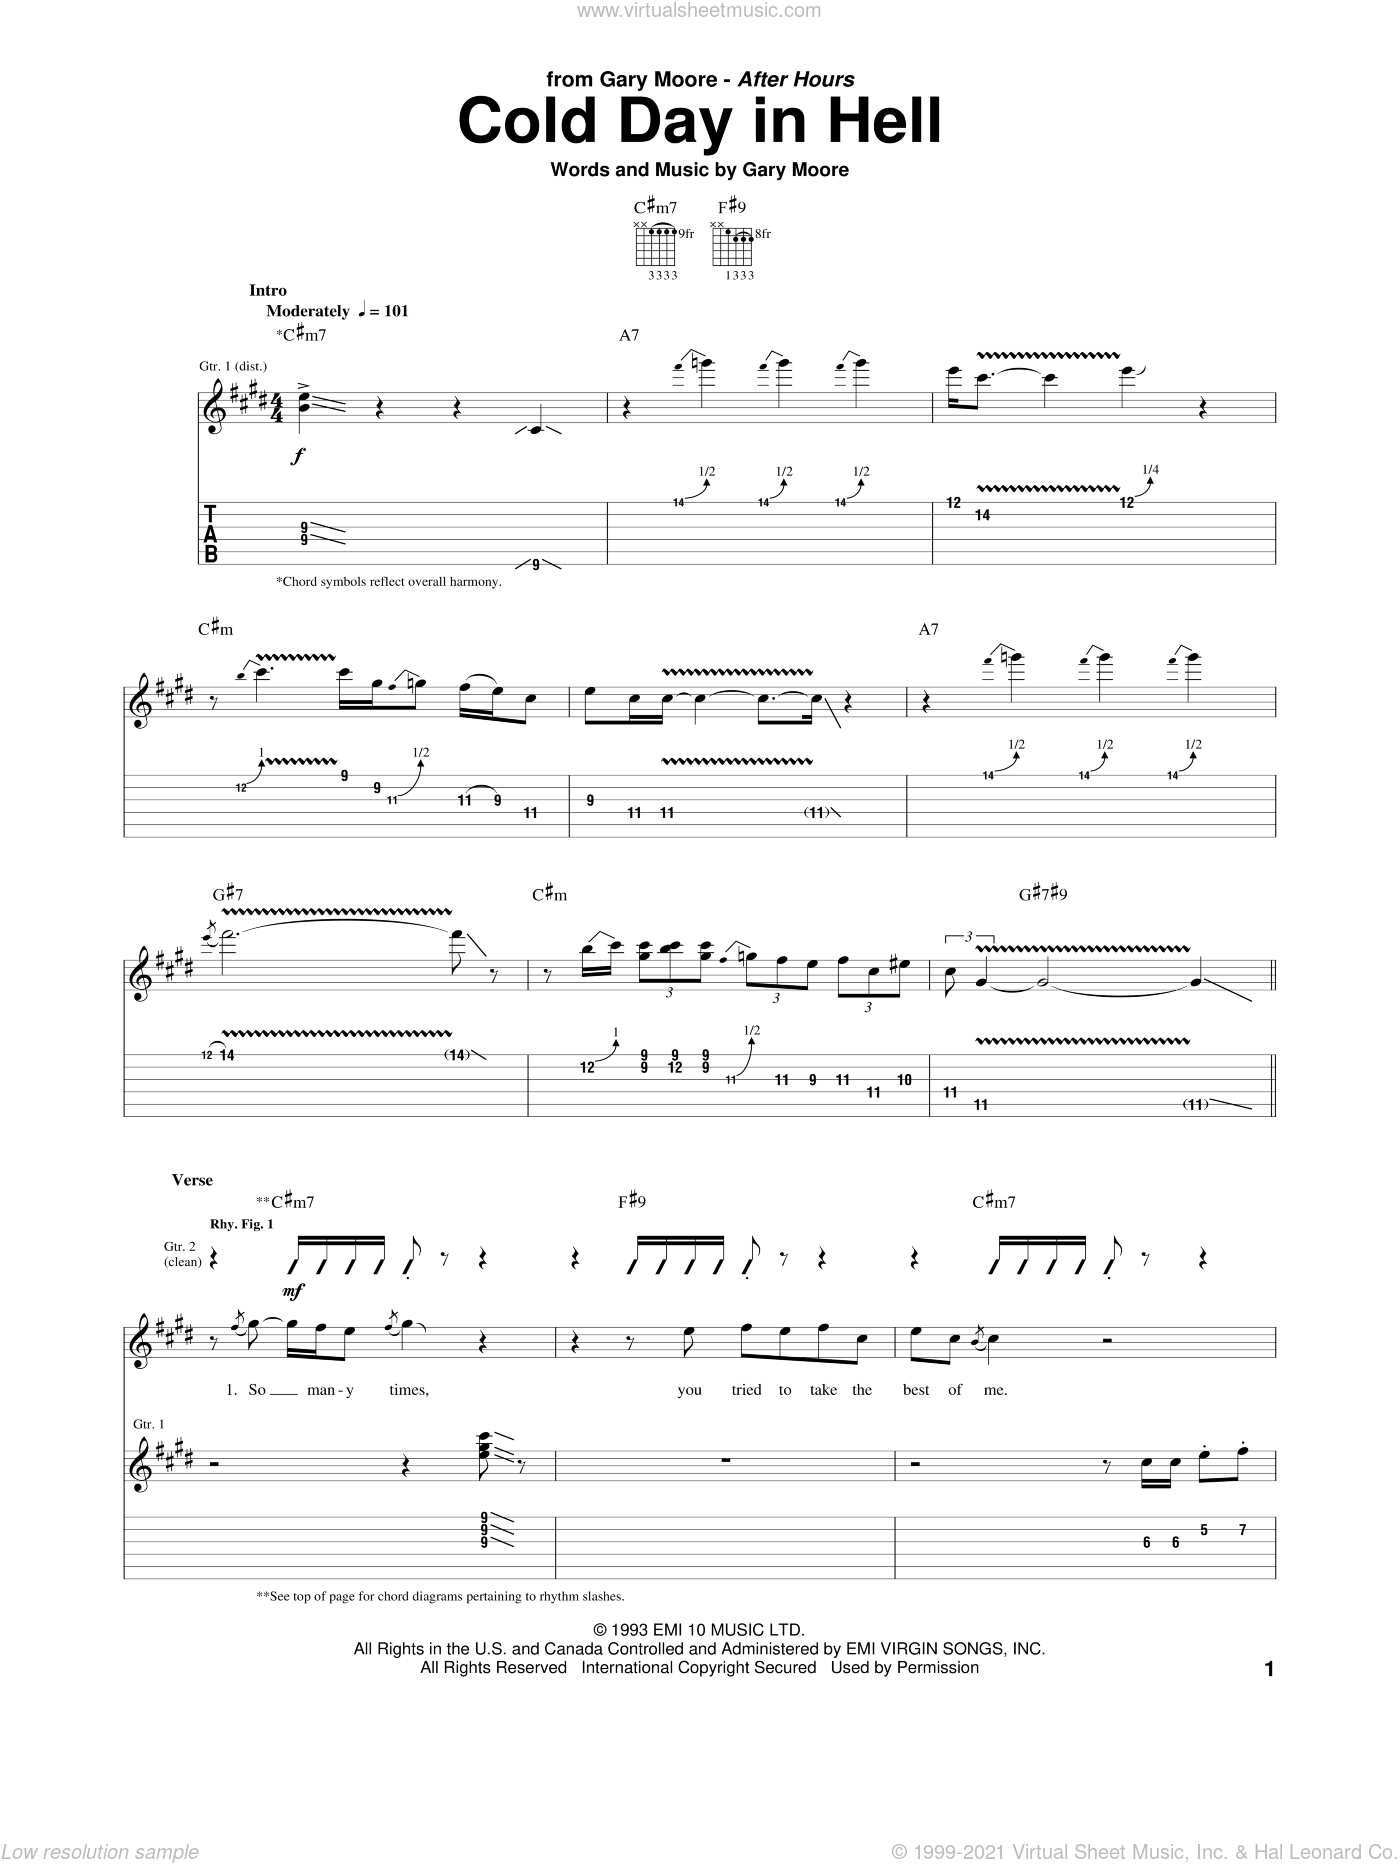 Cold Day In Hell sheet music for guitar (tablature) by Gary Moore, intermediate skill level